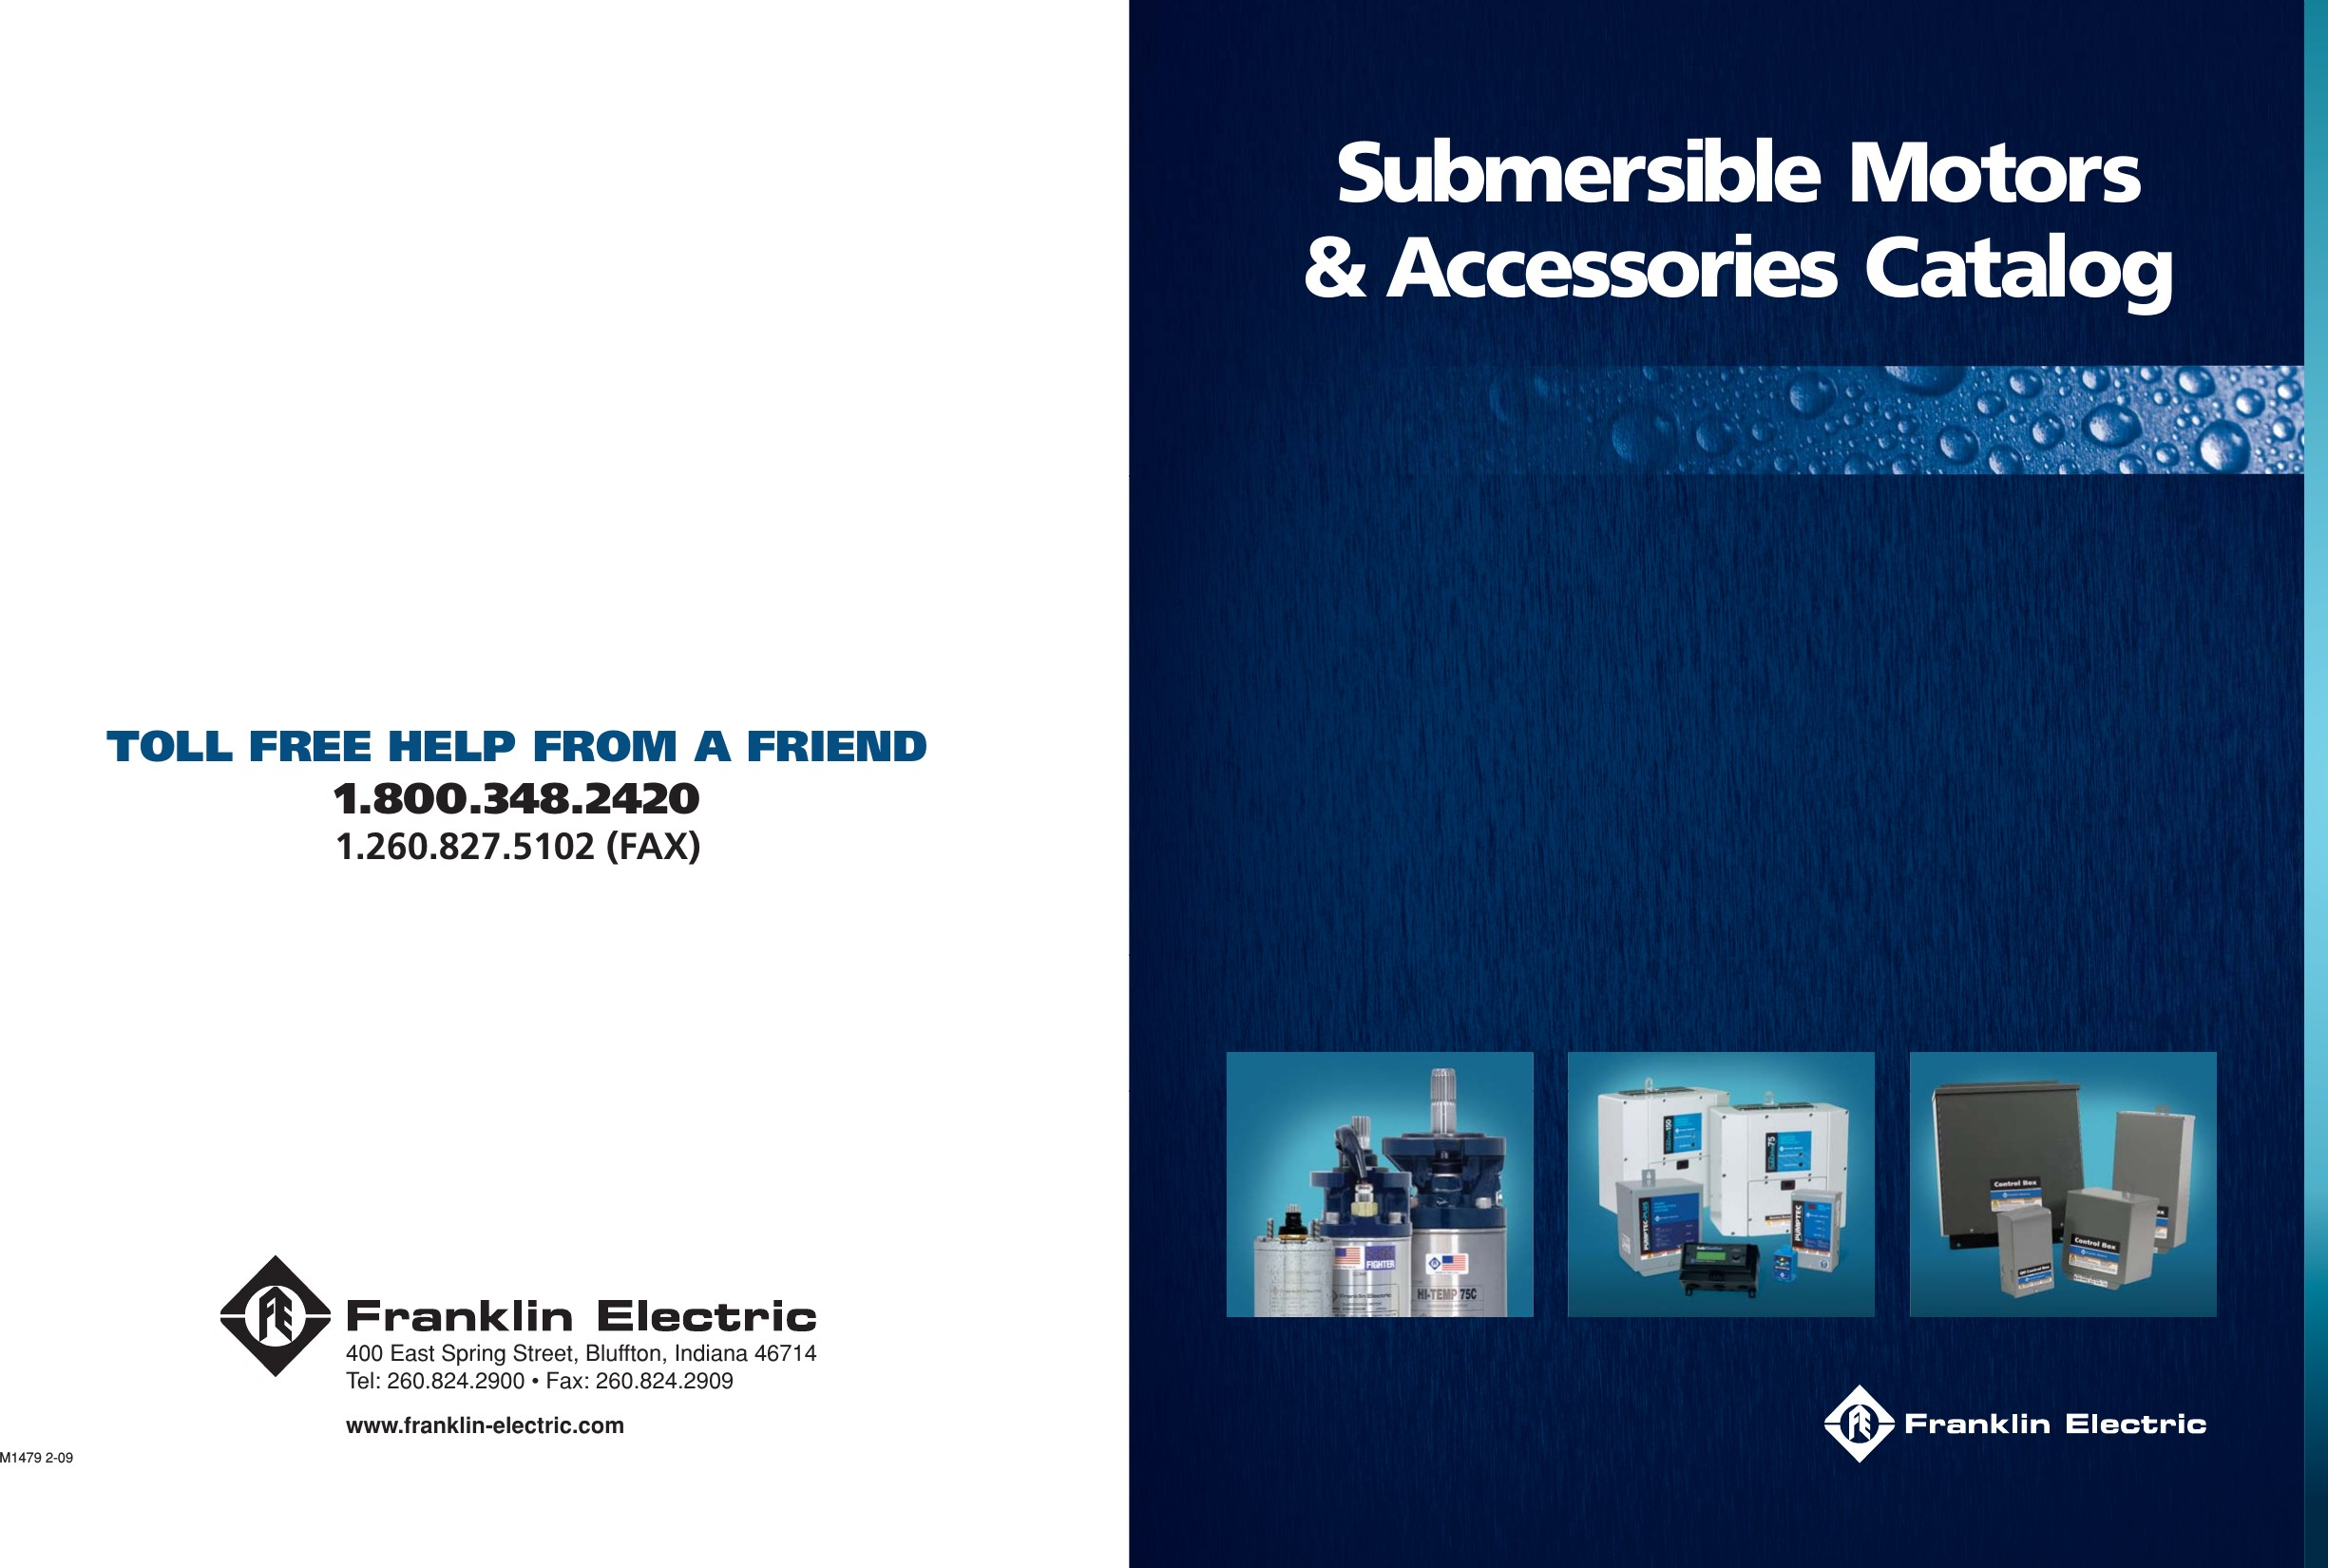 Franklin Electric Submersible Pump Electrical Connection 4 Franklin Submersible Motor & Accessories Catalog Of Franklin Electric Submersible Pump Electrical Connection